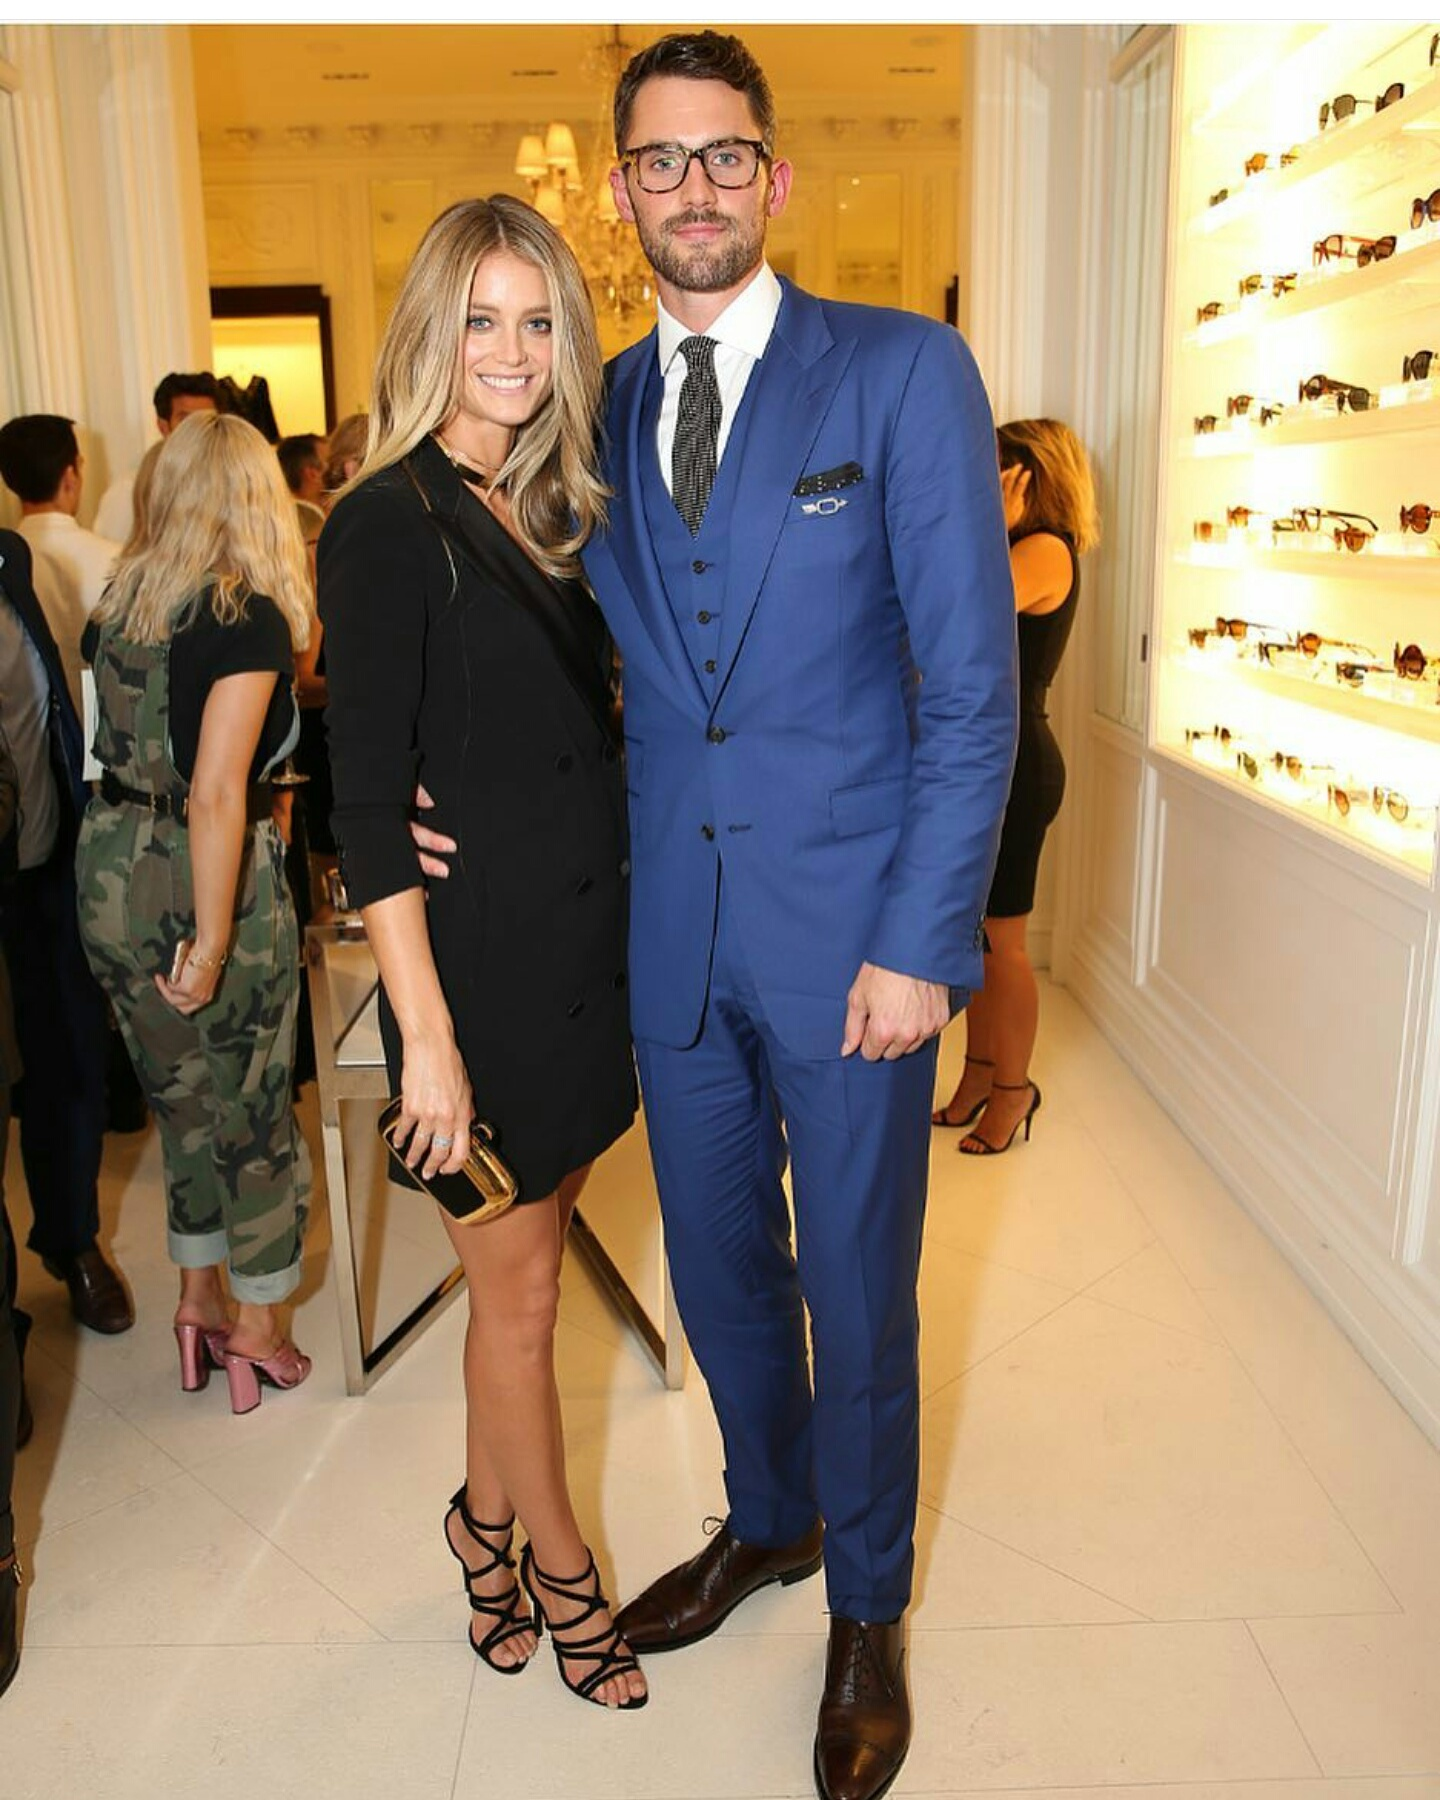 STYLE: NBA Kevin Love Attends Ralph Lauren New York Fashion Week Runway Show